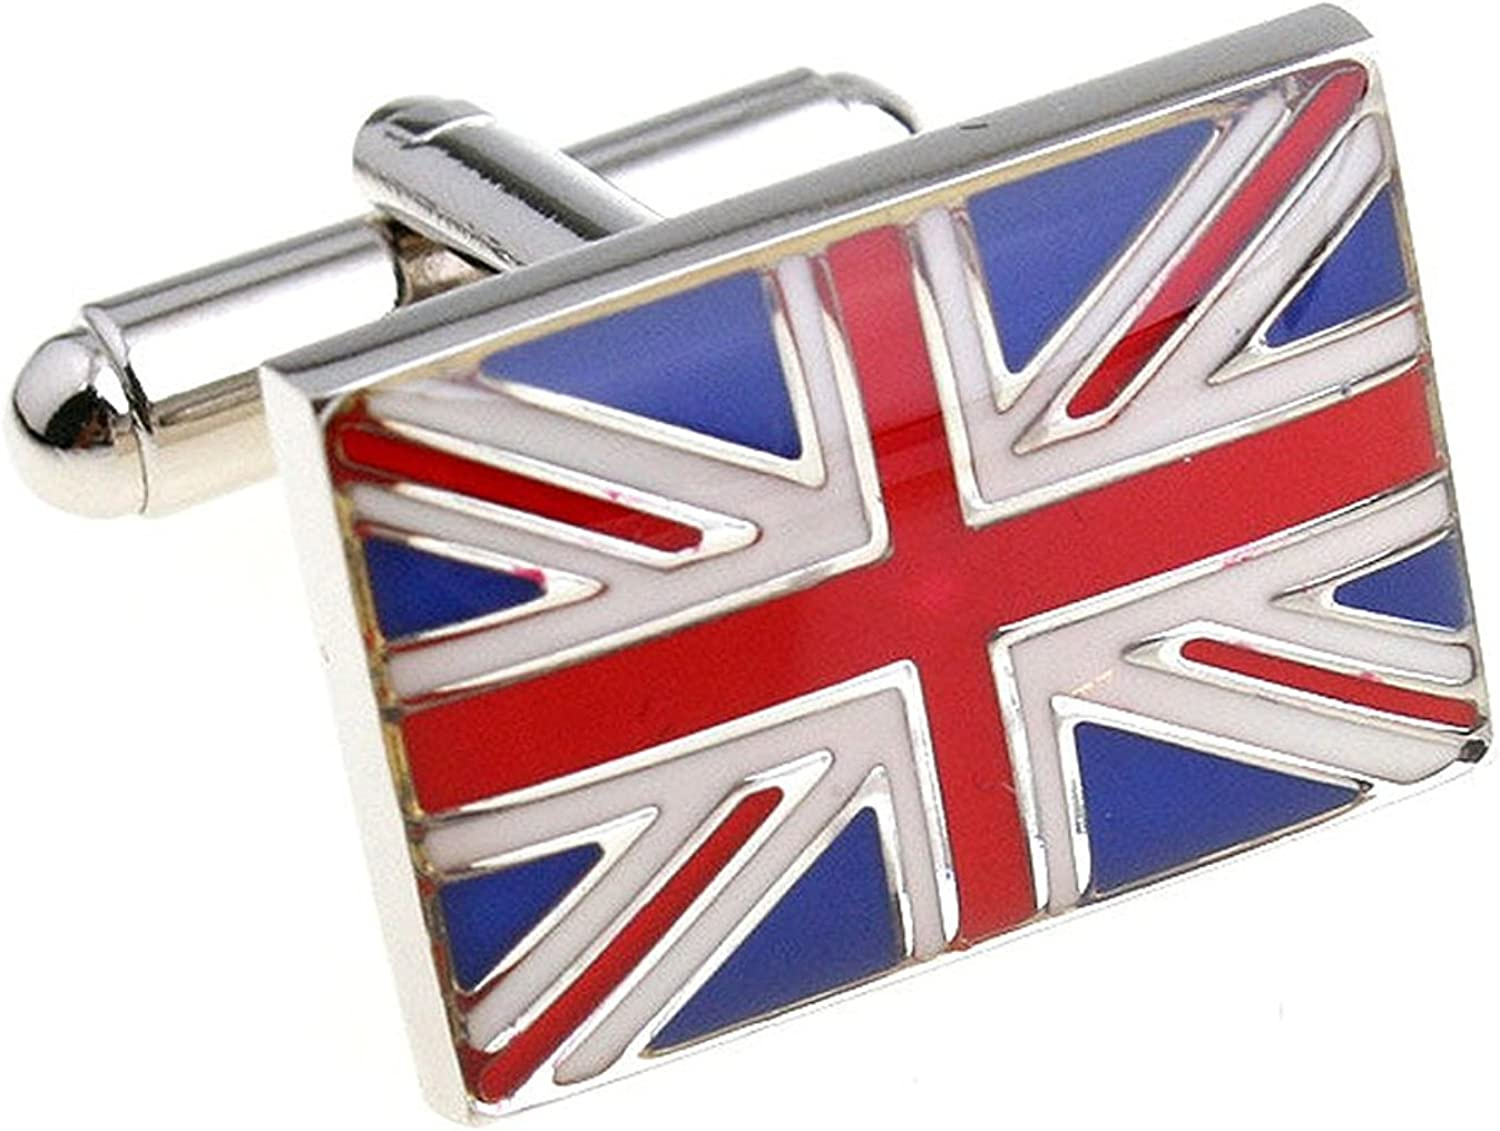 Mens Executive Cufflinks European Traveler Union Jack British Red White Blue UK Flag Cuff Links